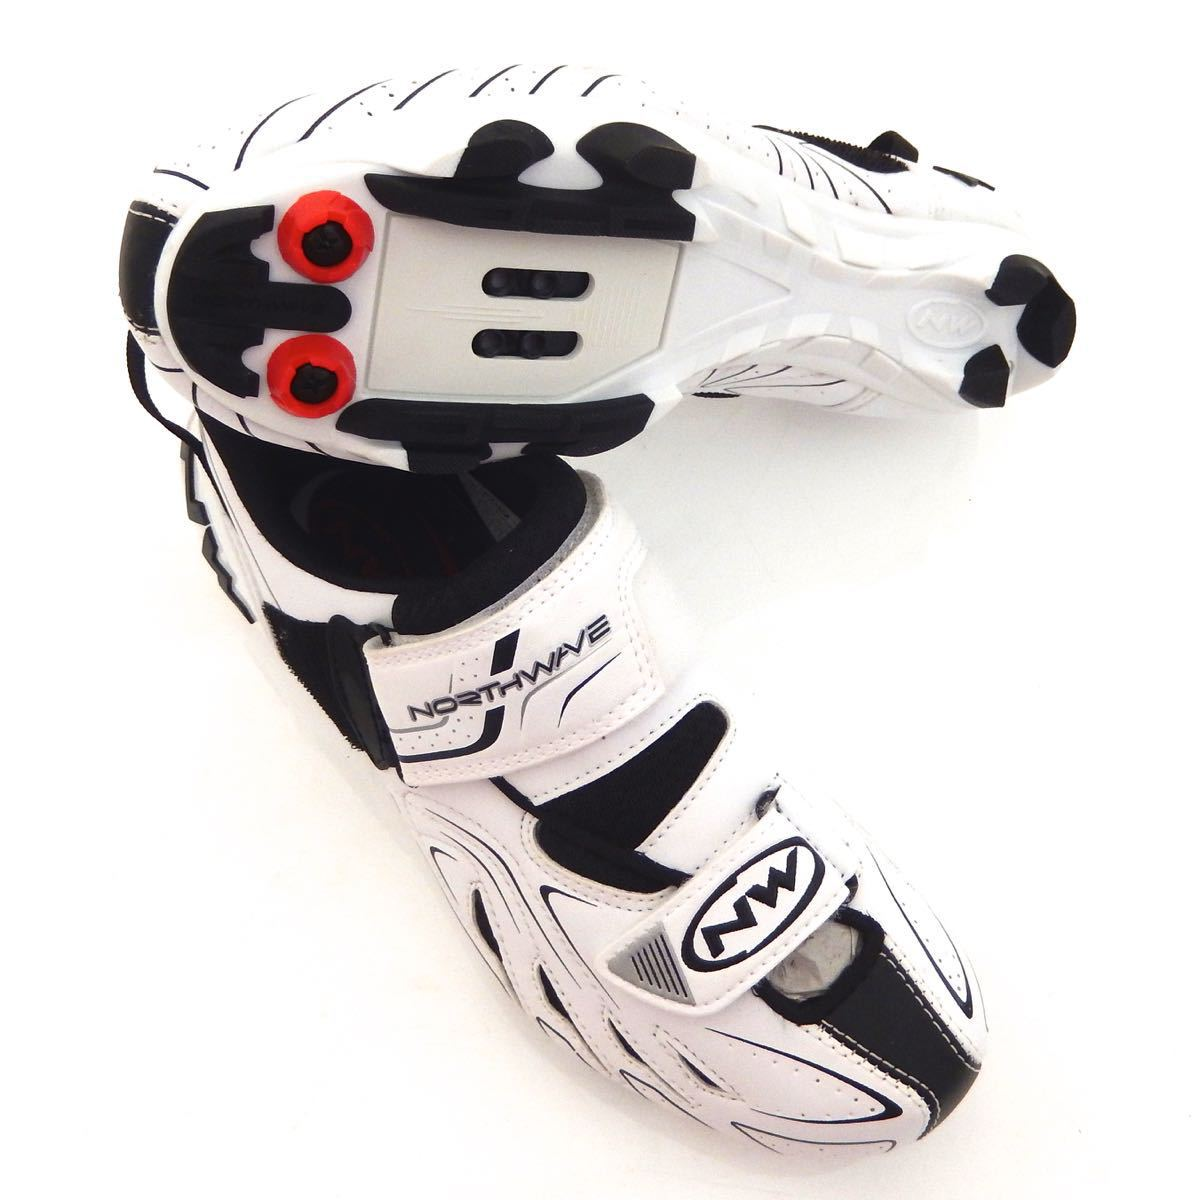 northwave tribute tarrae cycling shoes men 39 s offroad adventure white black 41